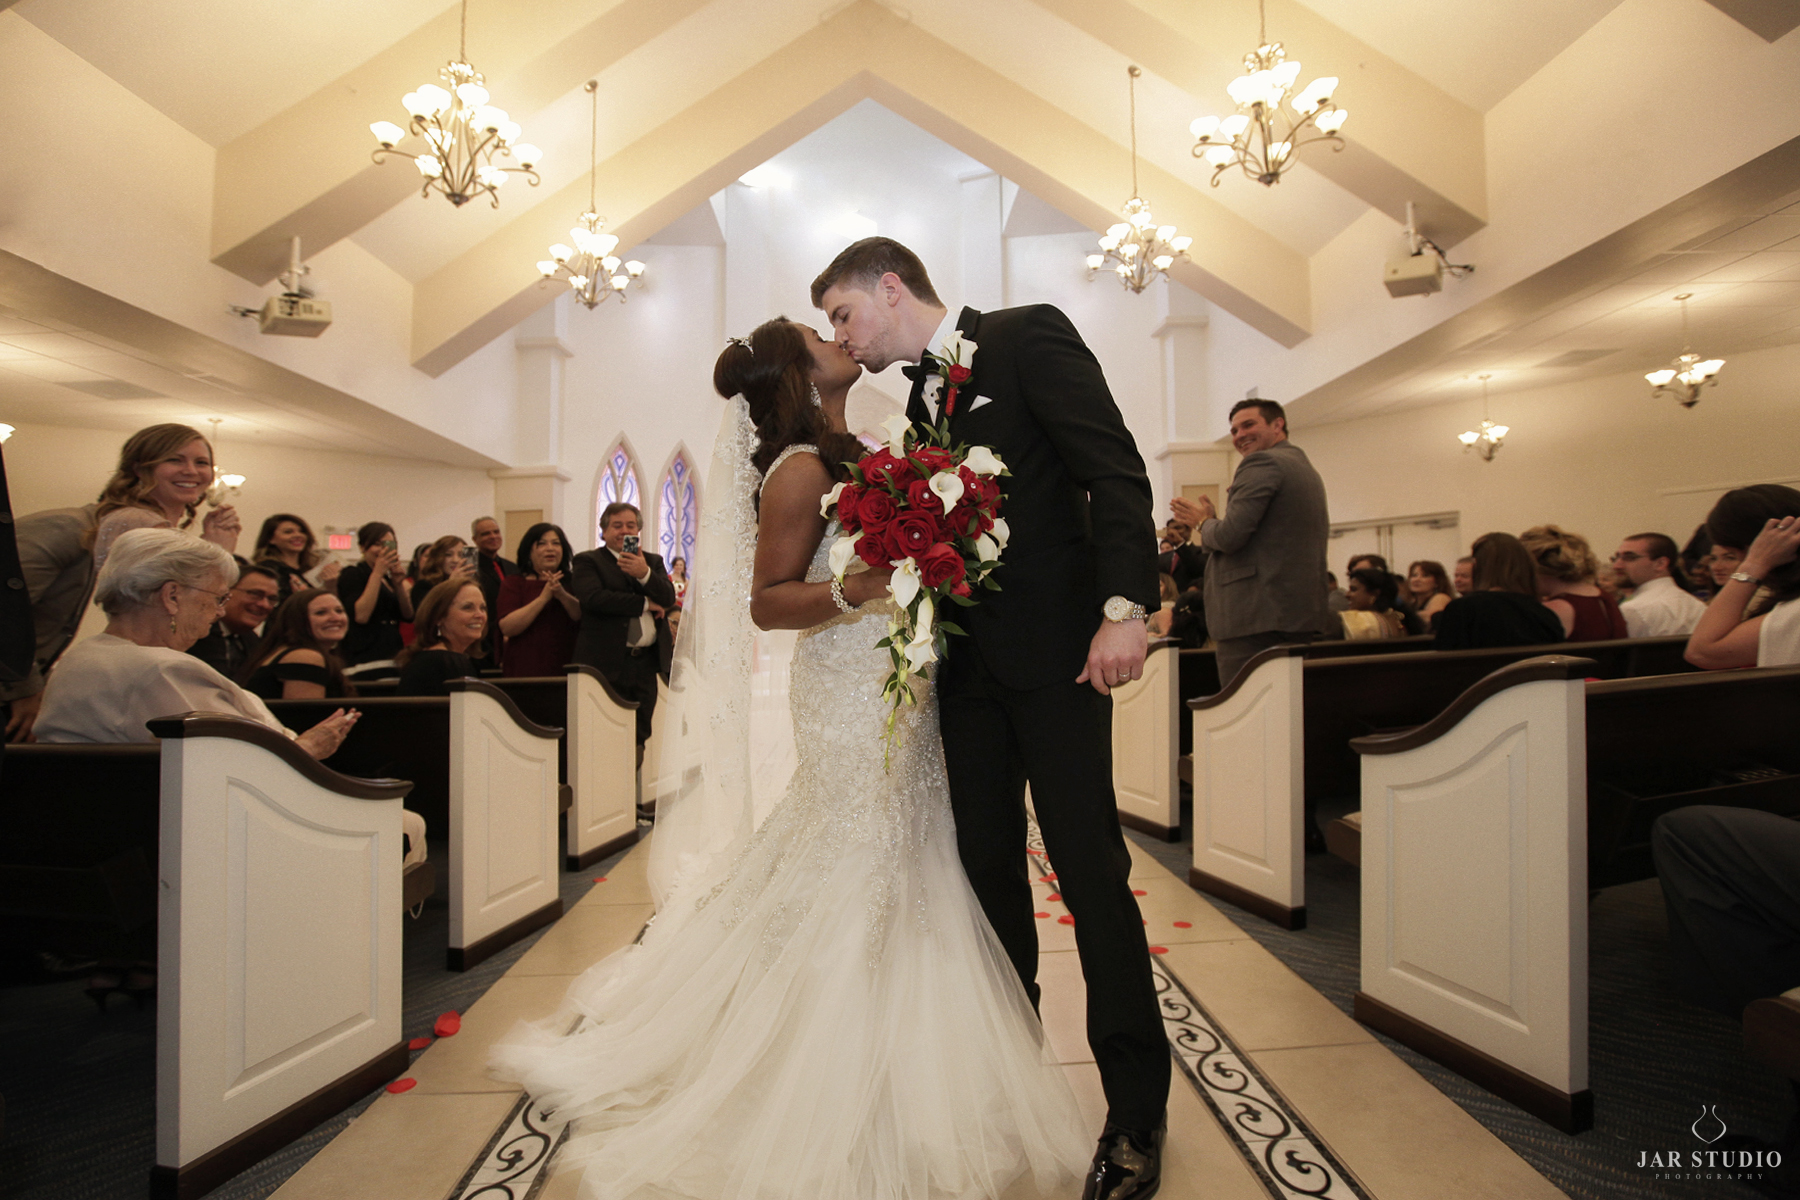 20-elegant-romantic-wedding-church-orlando-photography.JPG